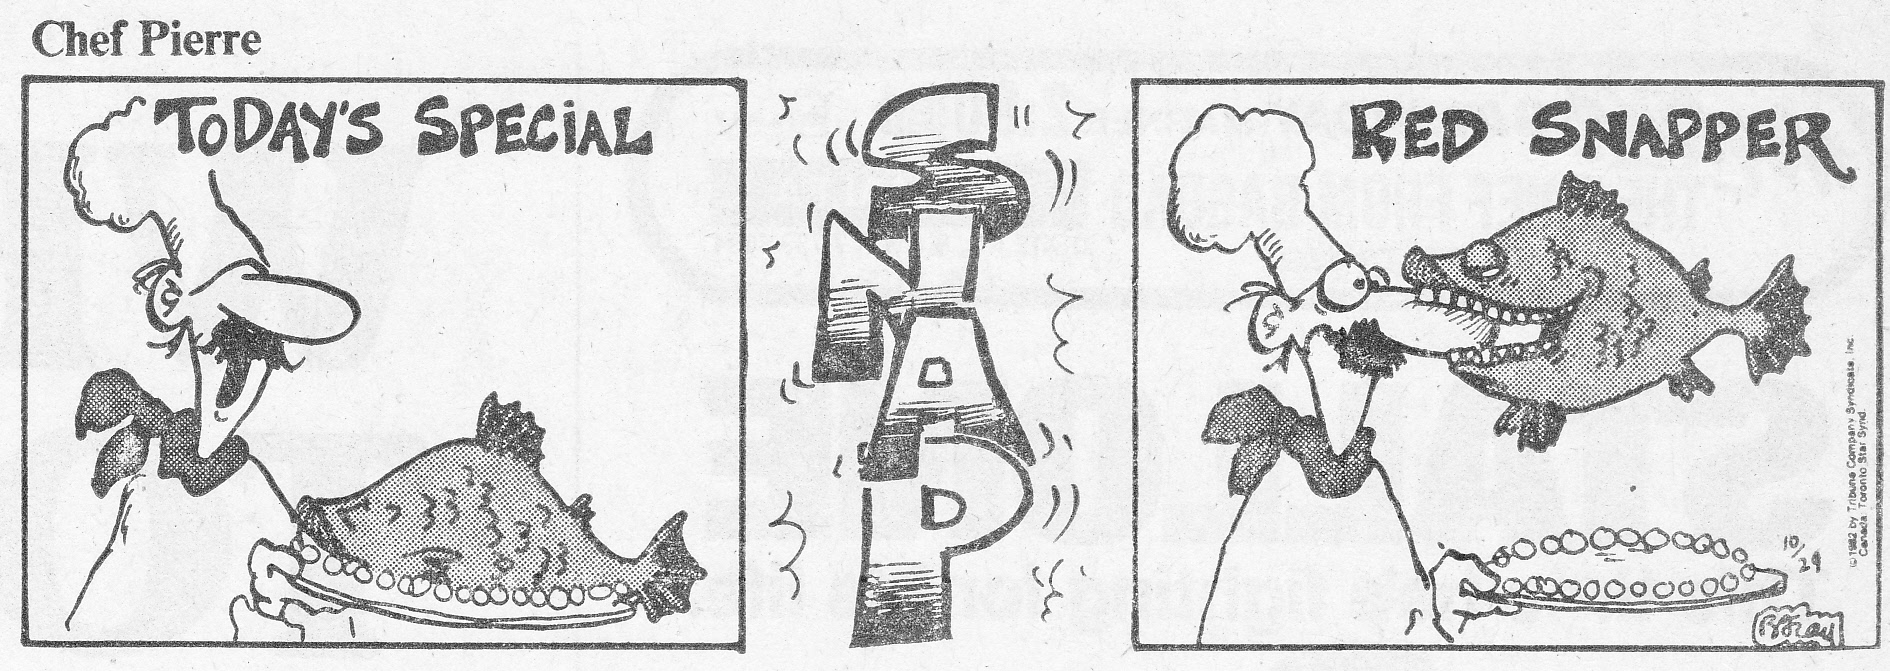 C:\Users\Robert\Documents\CARTOONING ILLUSTRATION ANIMATION\IMAGE CARTOON\IMAGE CARTOON G\GRAND CHEF PIERRE [LE], Tor Star, 29 Oct 1982, D10.jpg